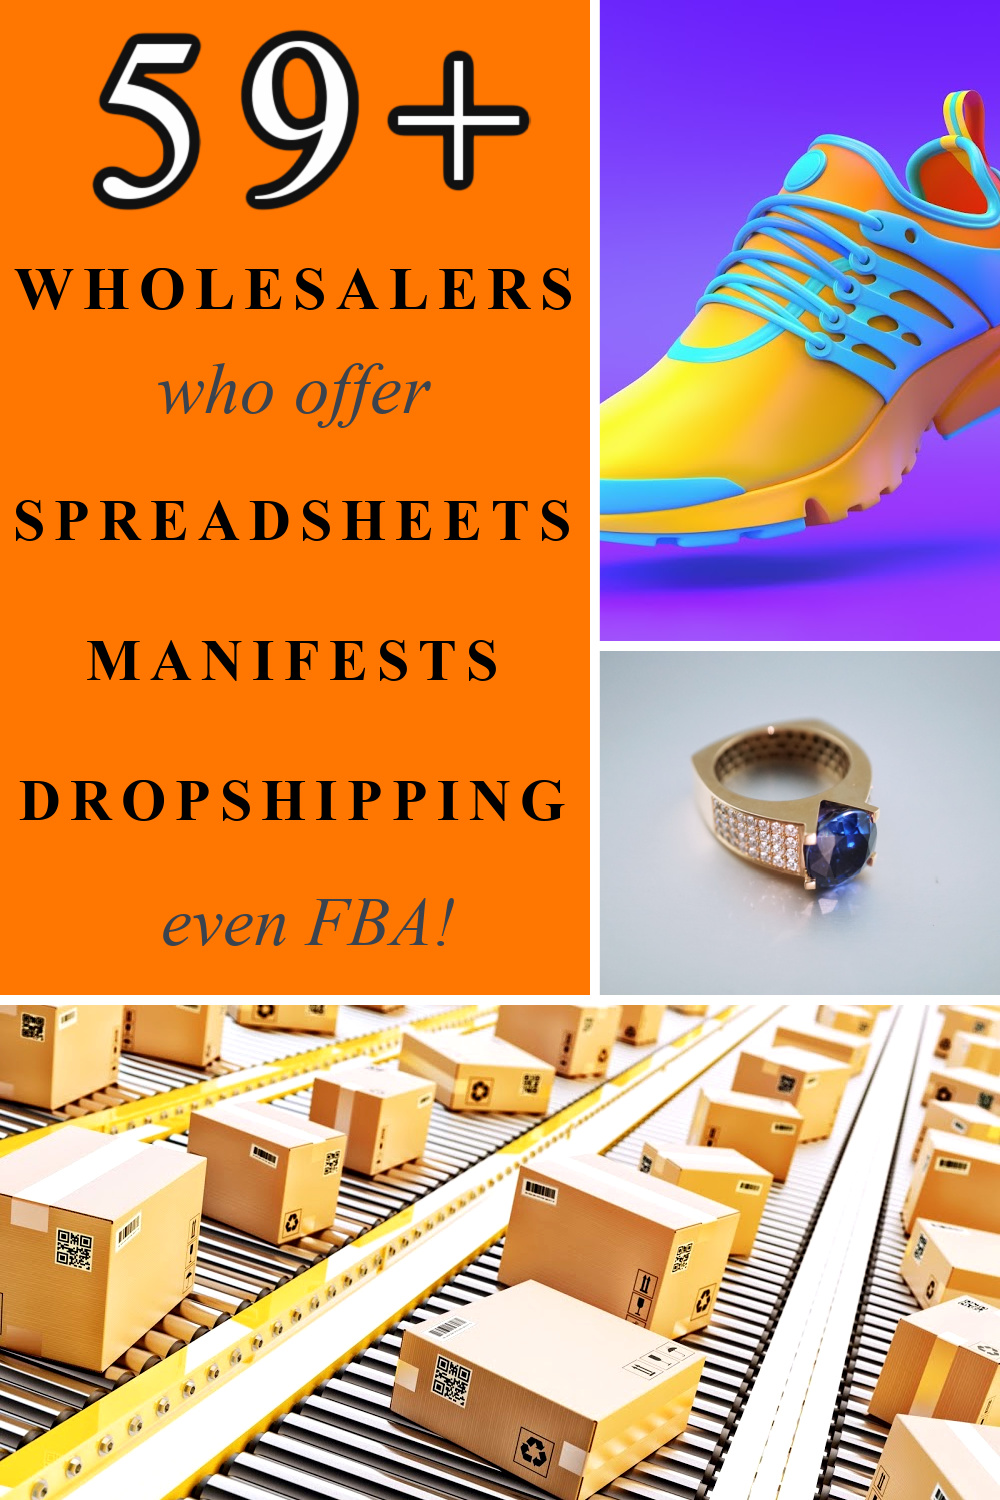 list-of-wholesale-companies-in-the-usa-that-have-manifests-databases-upcs-dropship-fba.jpg